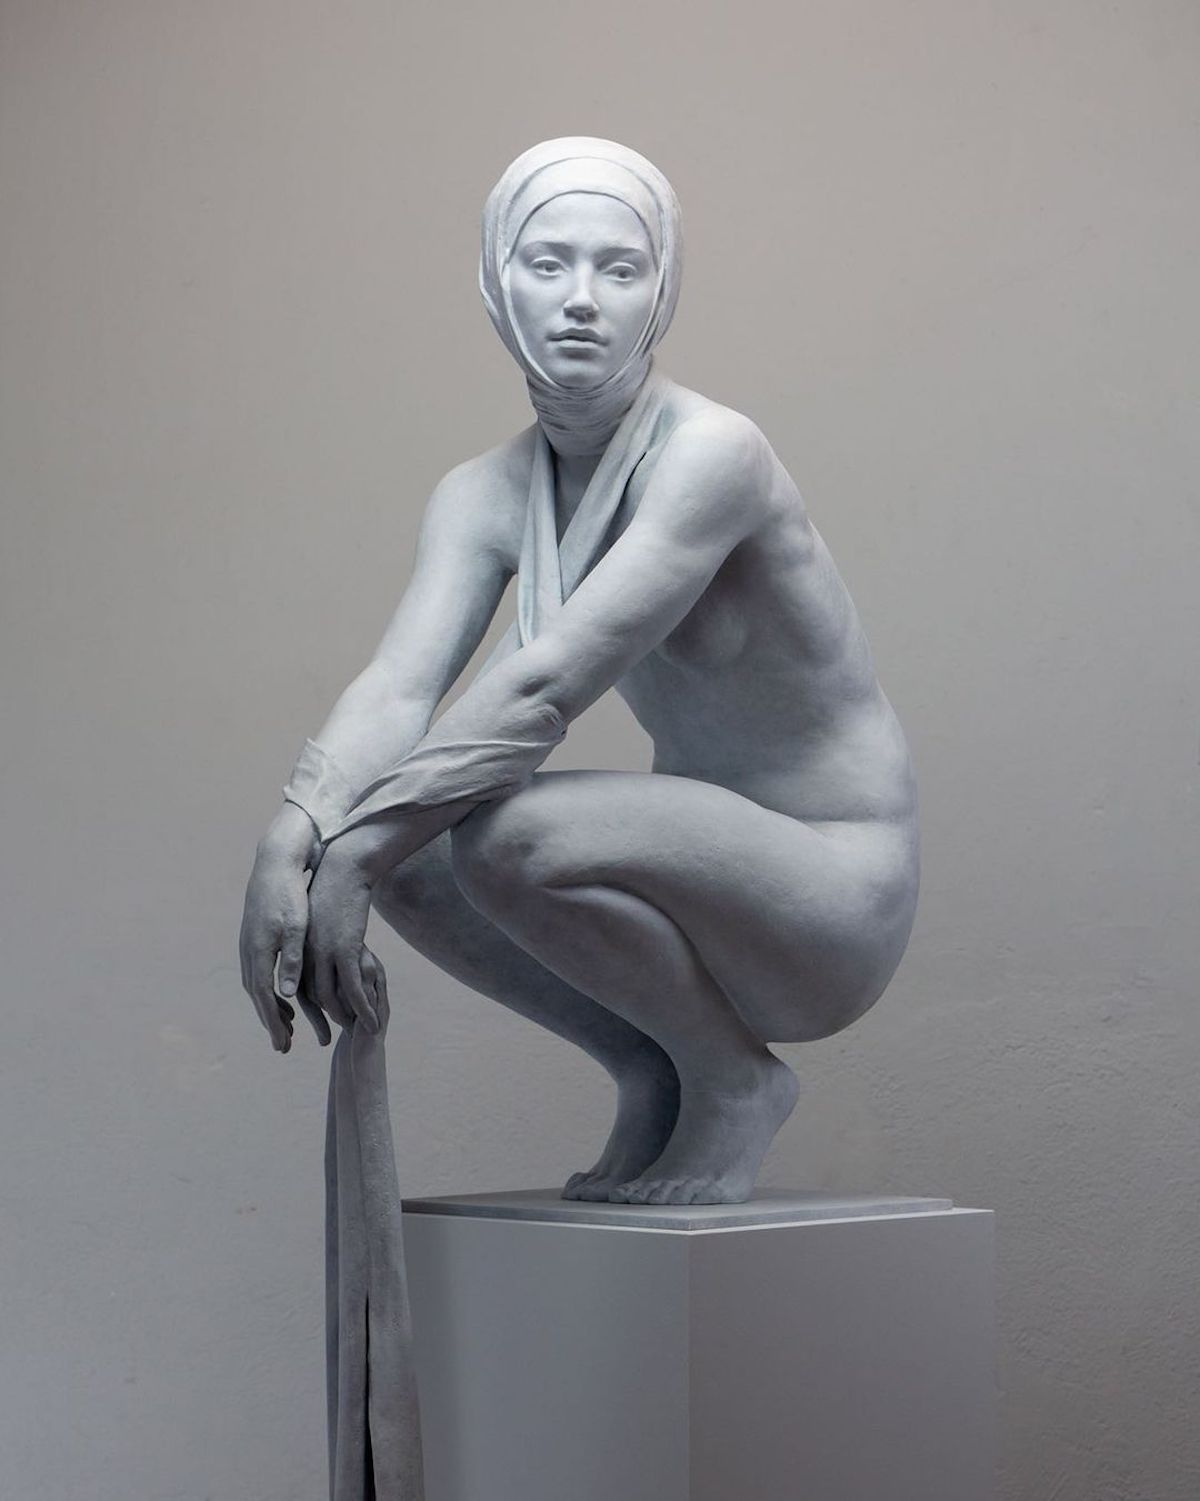 Figurative Sculpture by Coderch and Malavia